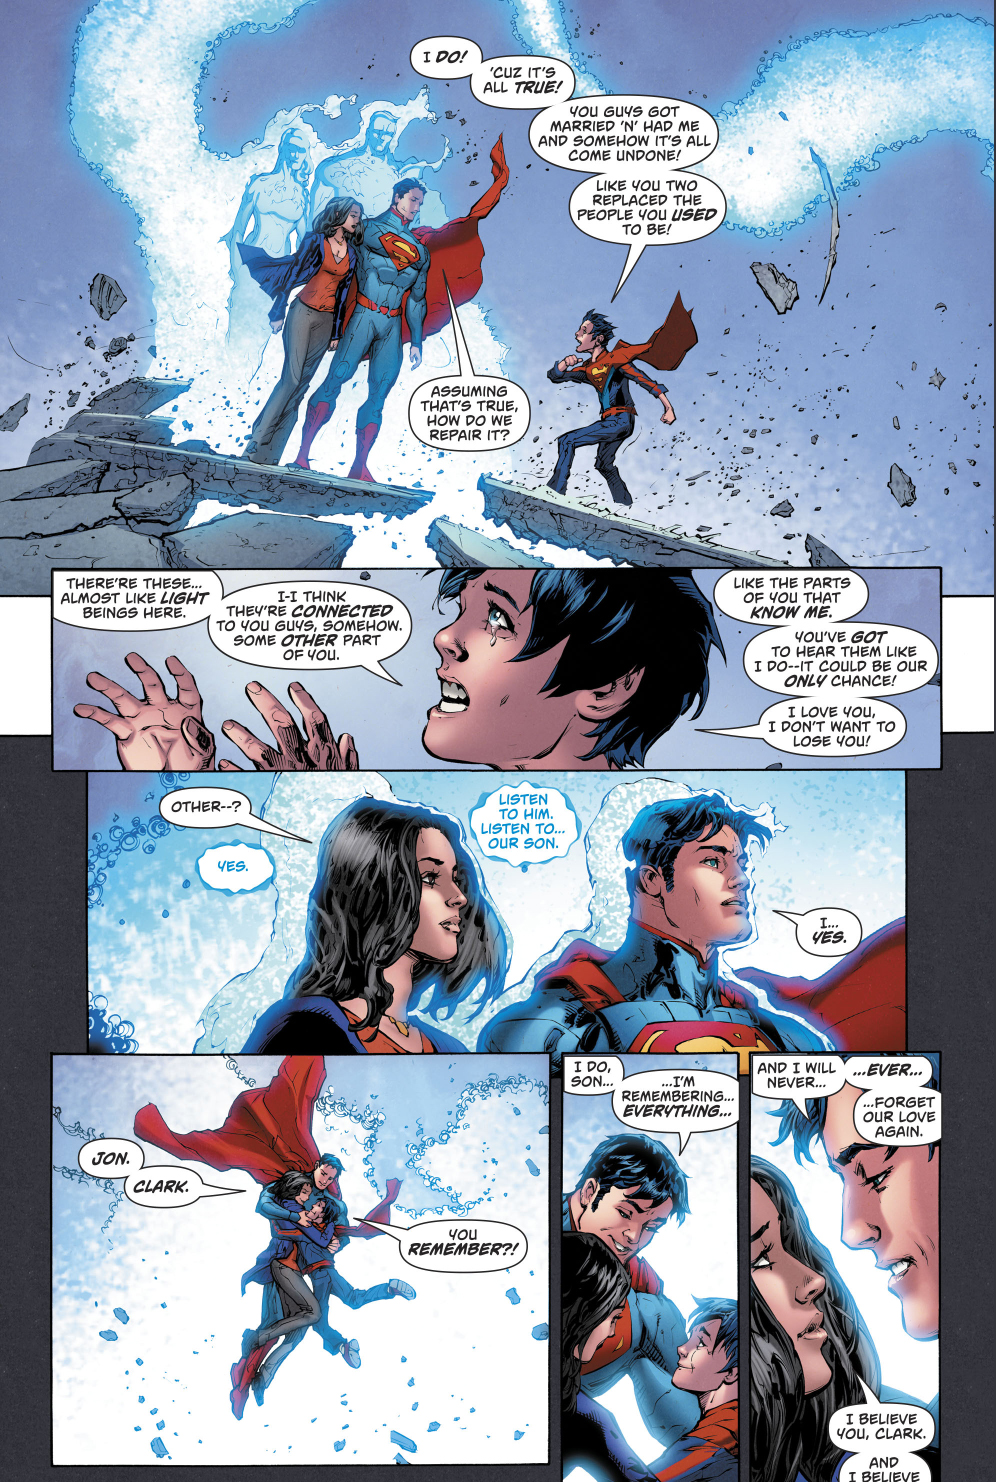 Superman And New 52 Superman Merge Into One   Comicnewbies